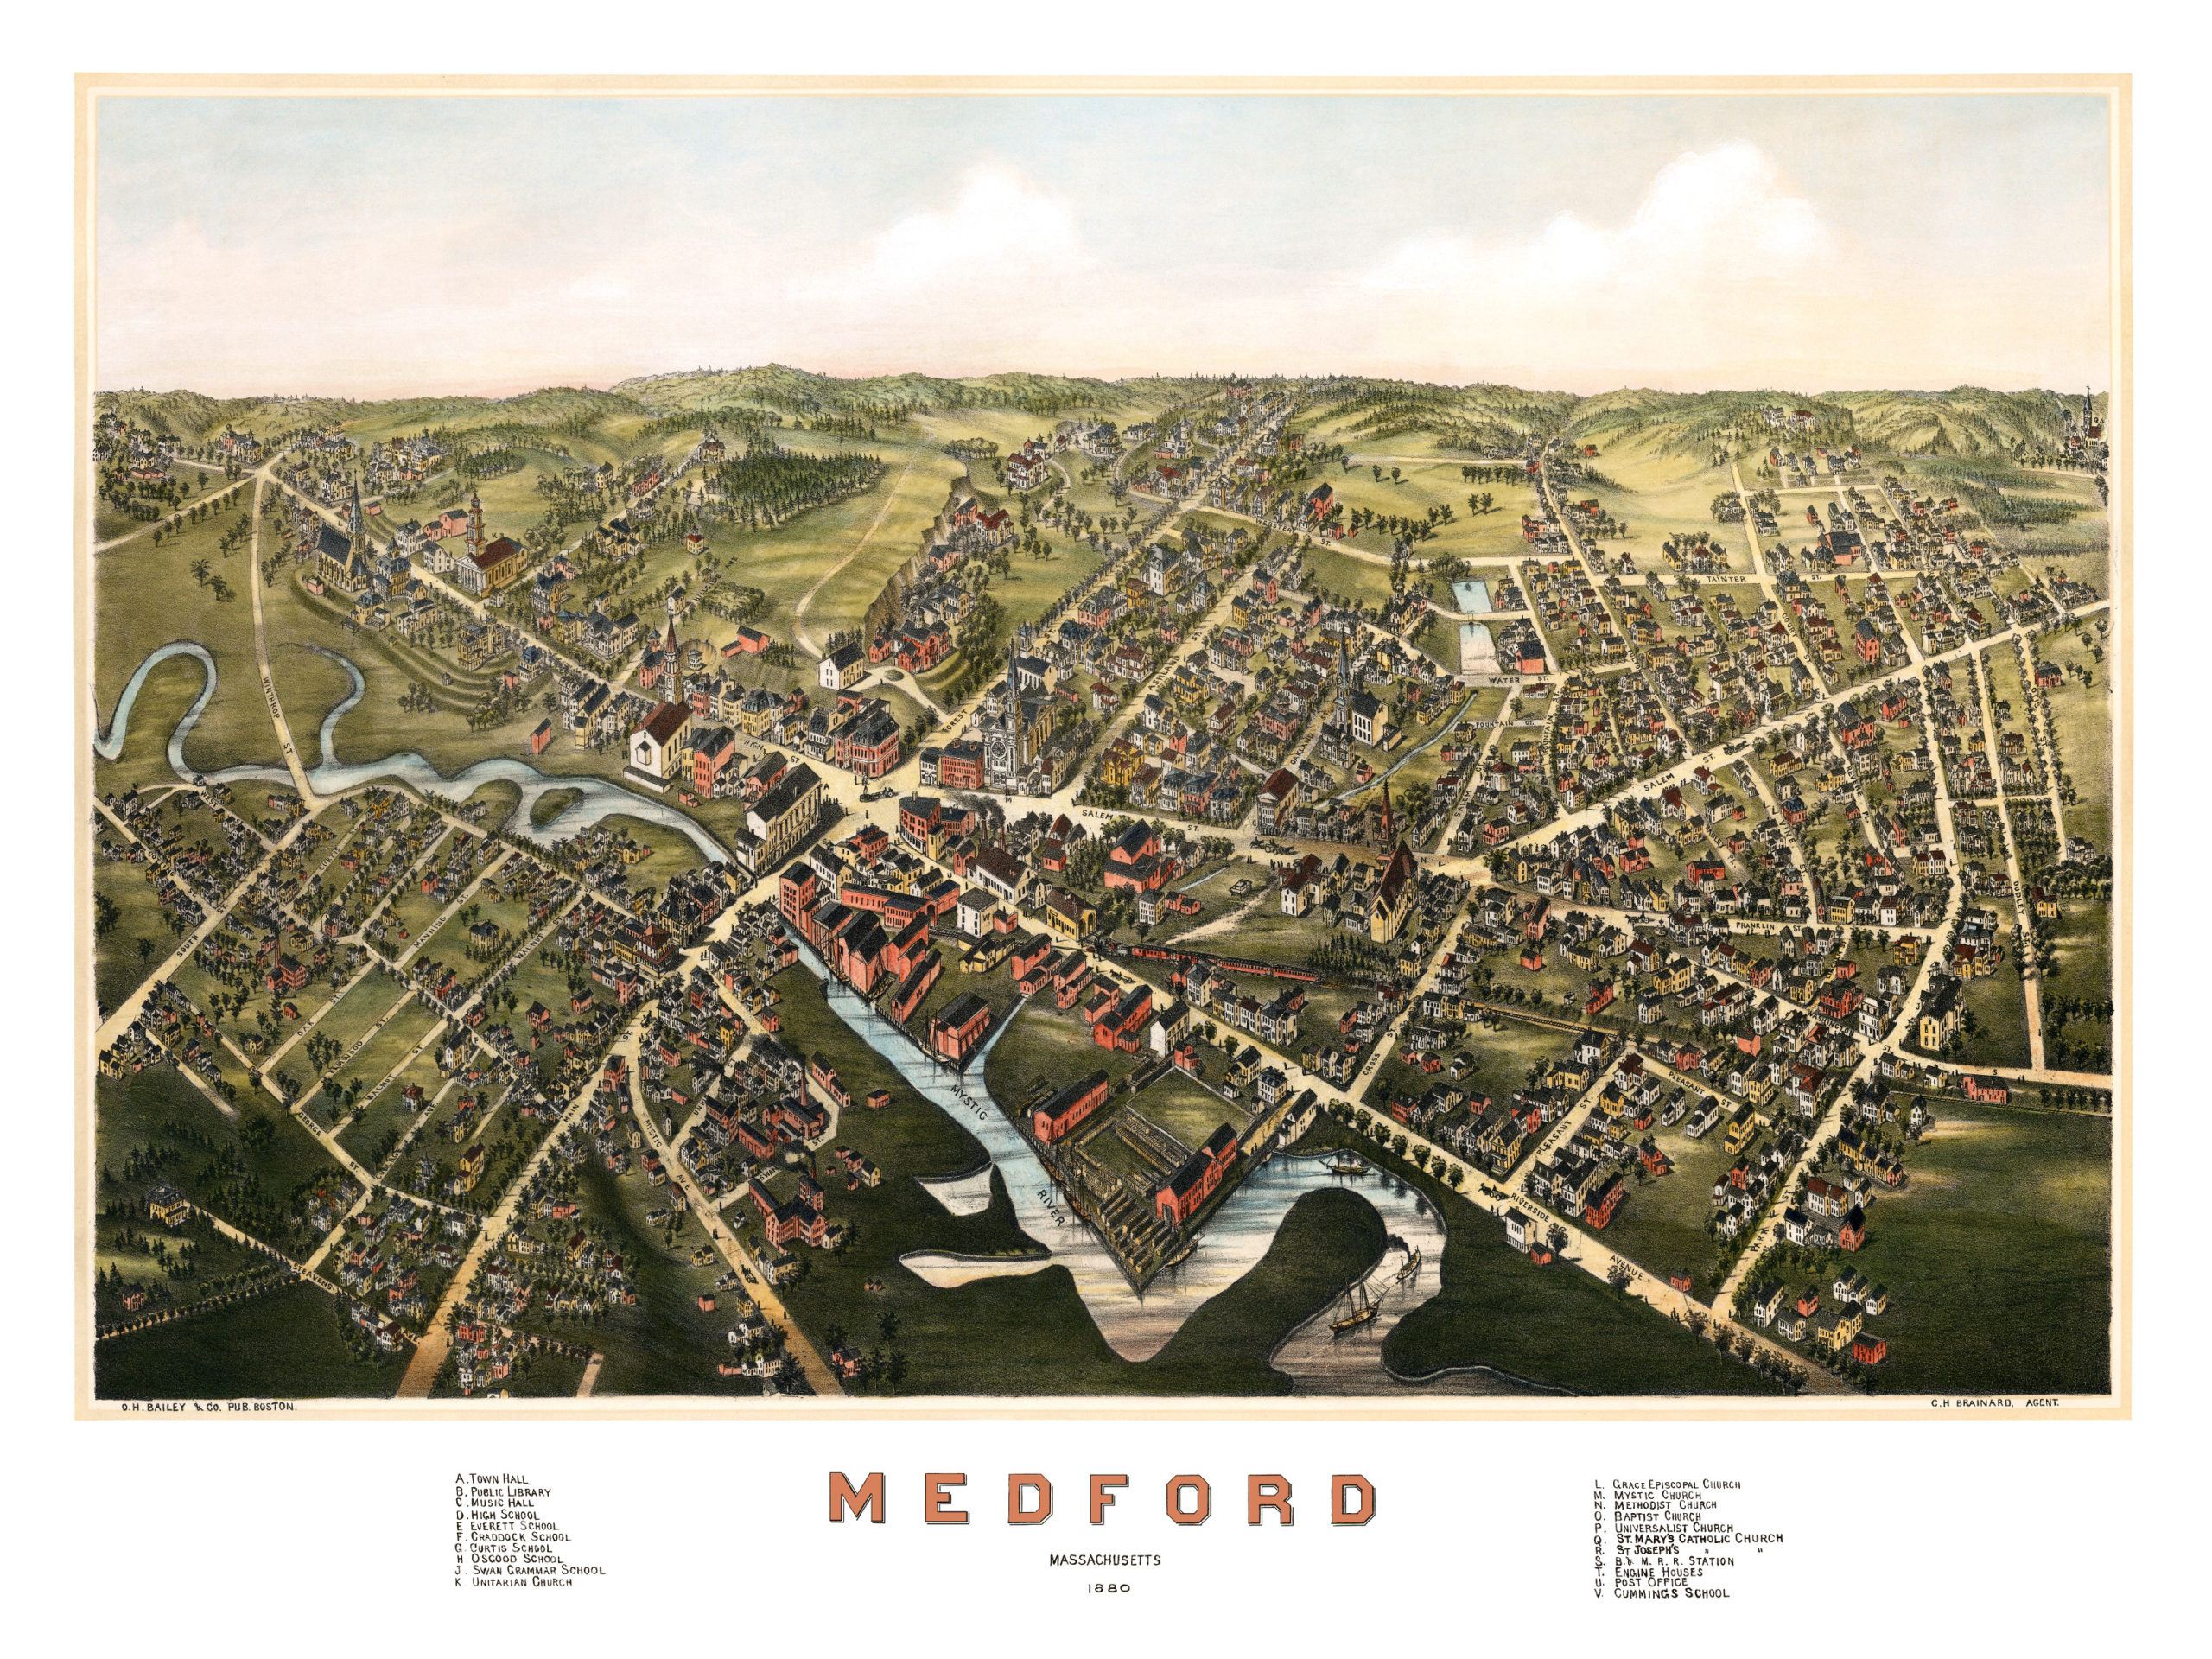 Amazing Old Map Of Medford Massachusetts From KNOWOL - Old map reproductions